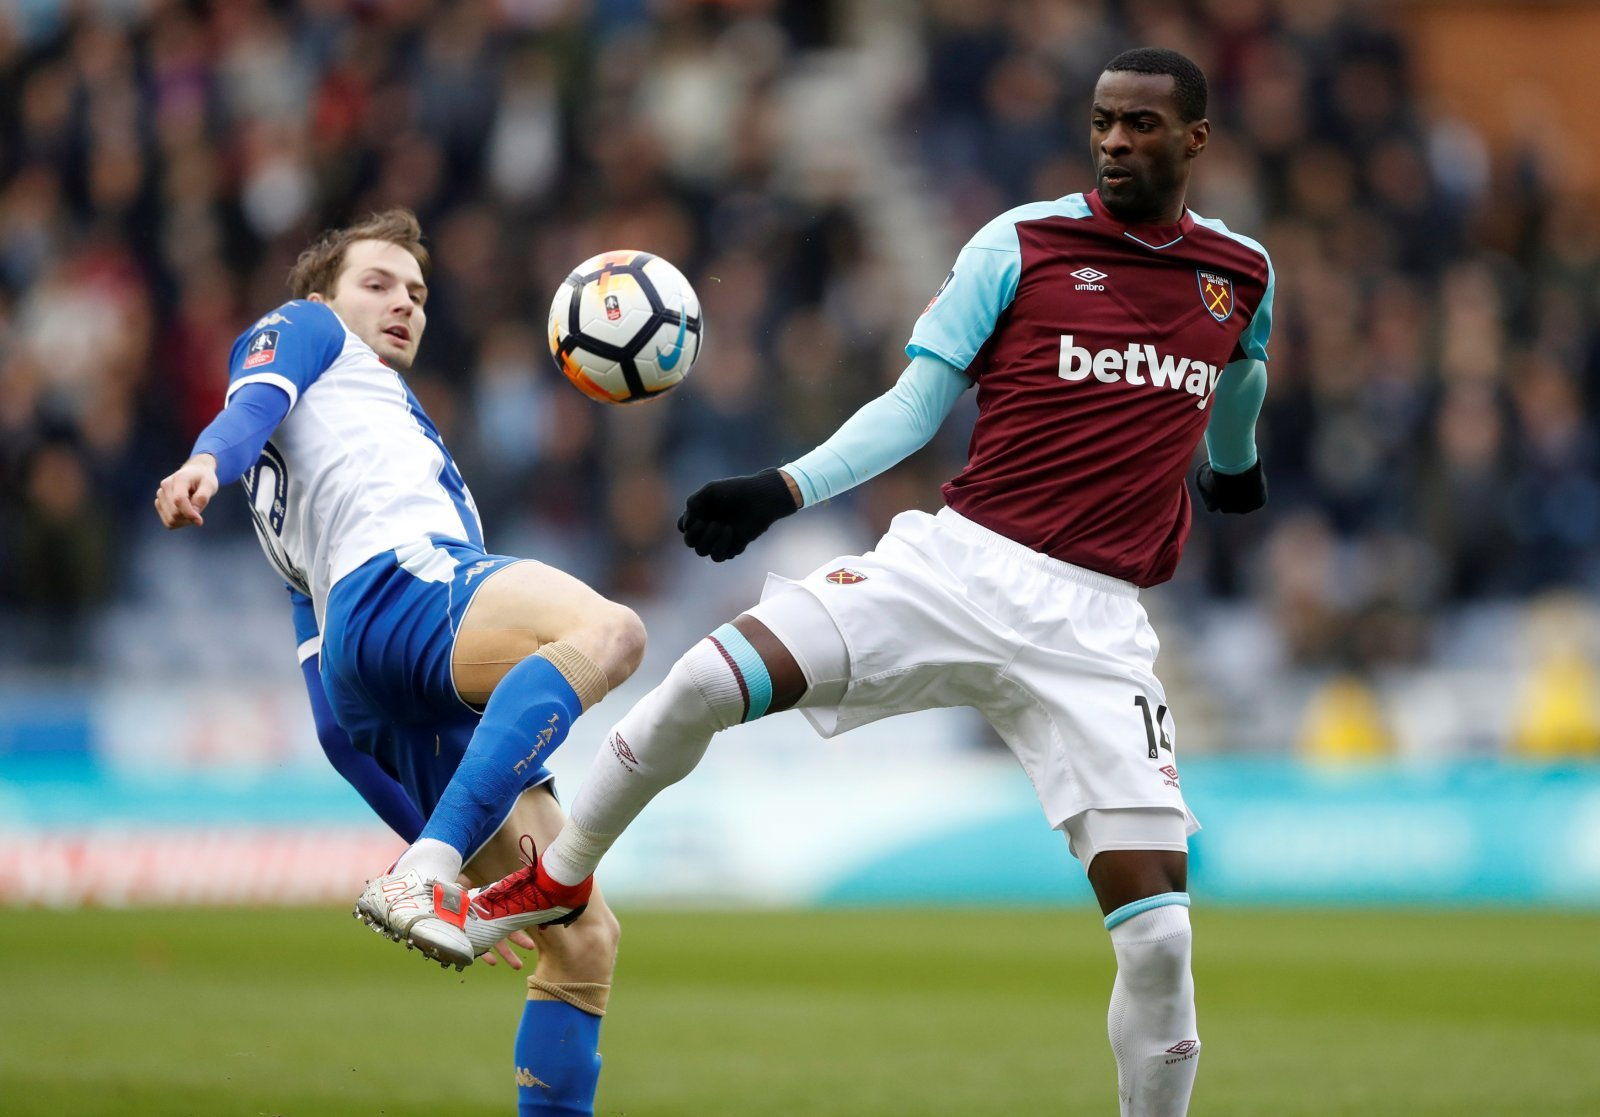 West Ham supporters on Twitter unhappy with the potential sale of Obiang